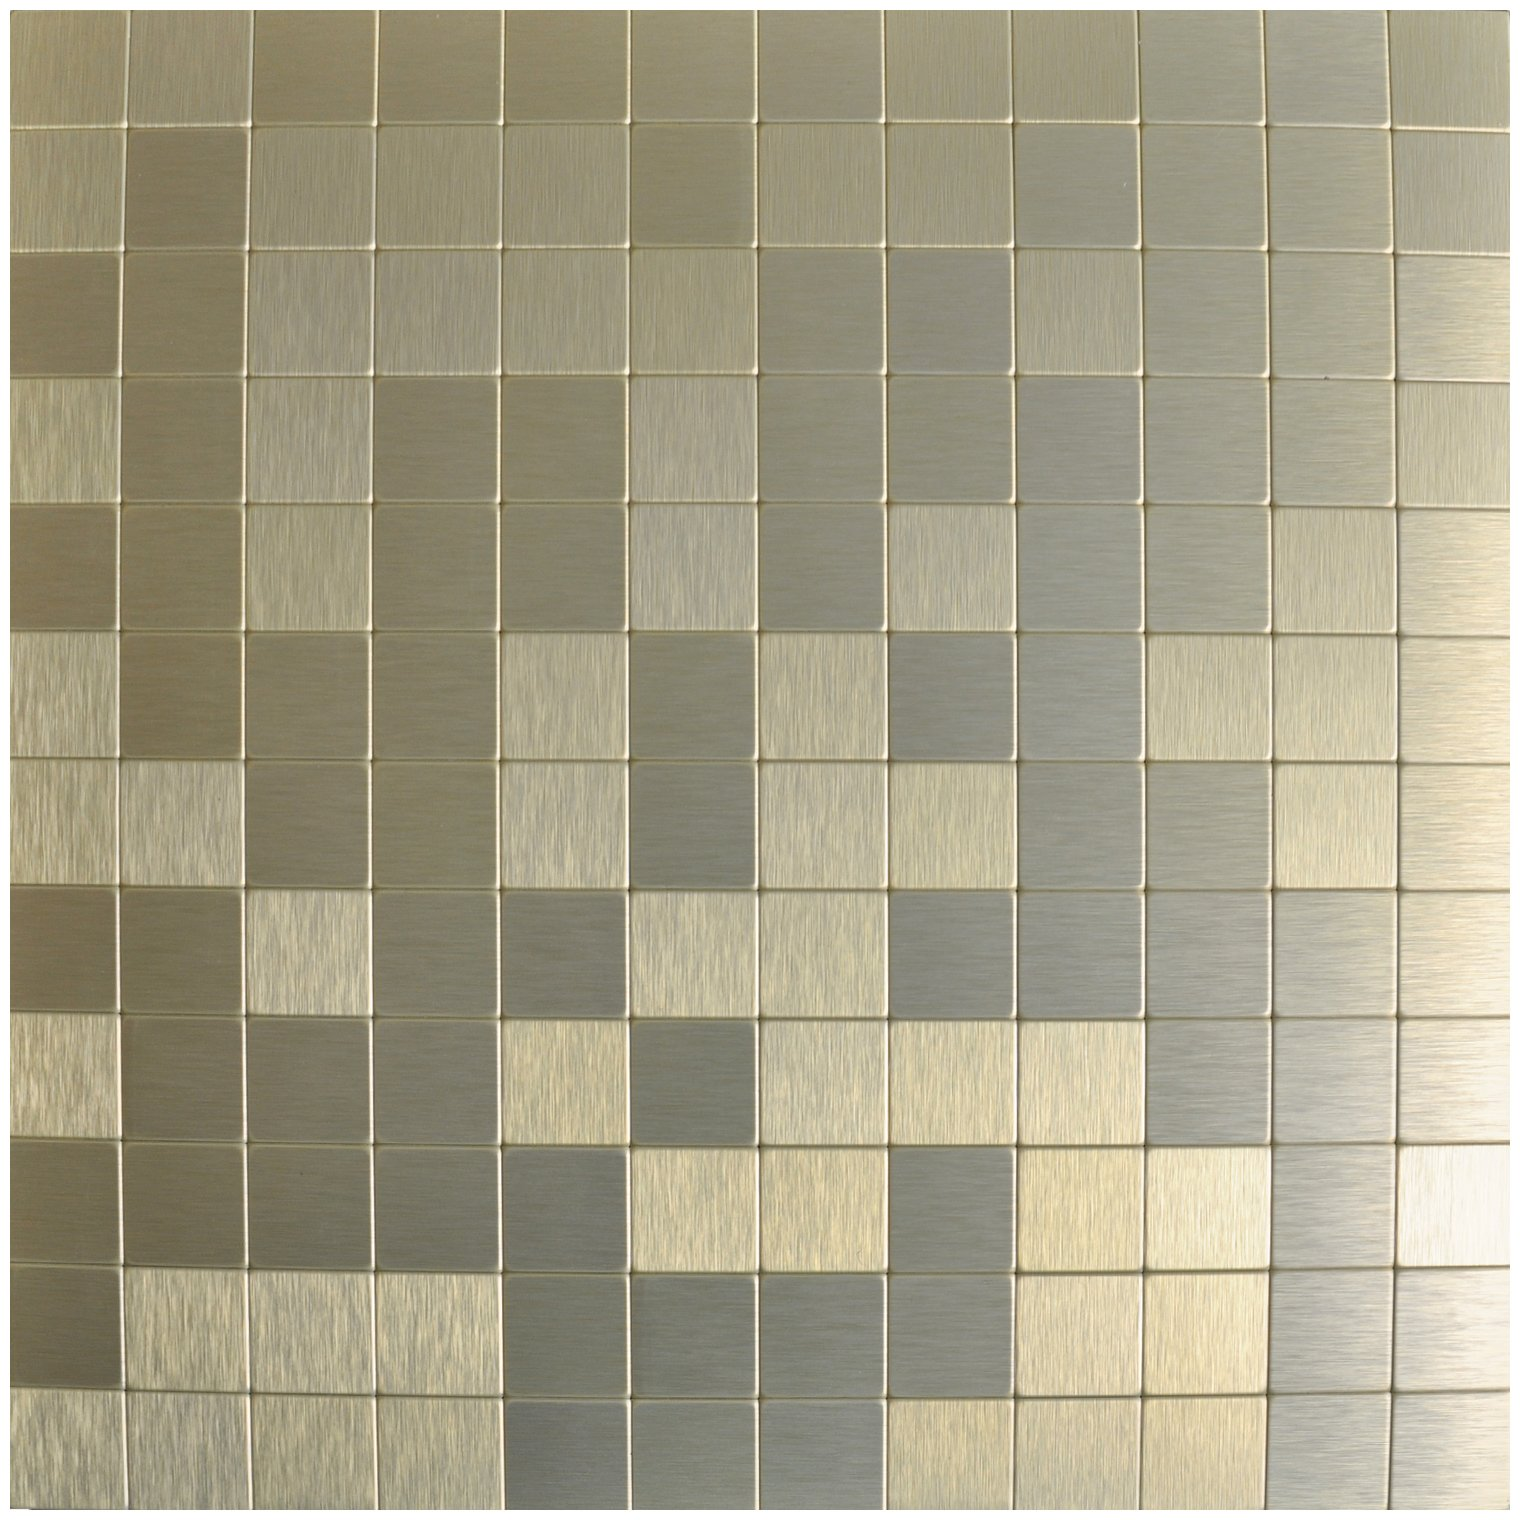 Art3d 10-Piece Backsplash Tile Peel and Stick Stainless Steel Mosaics, Champagne